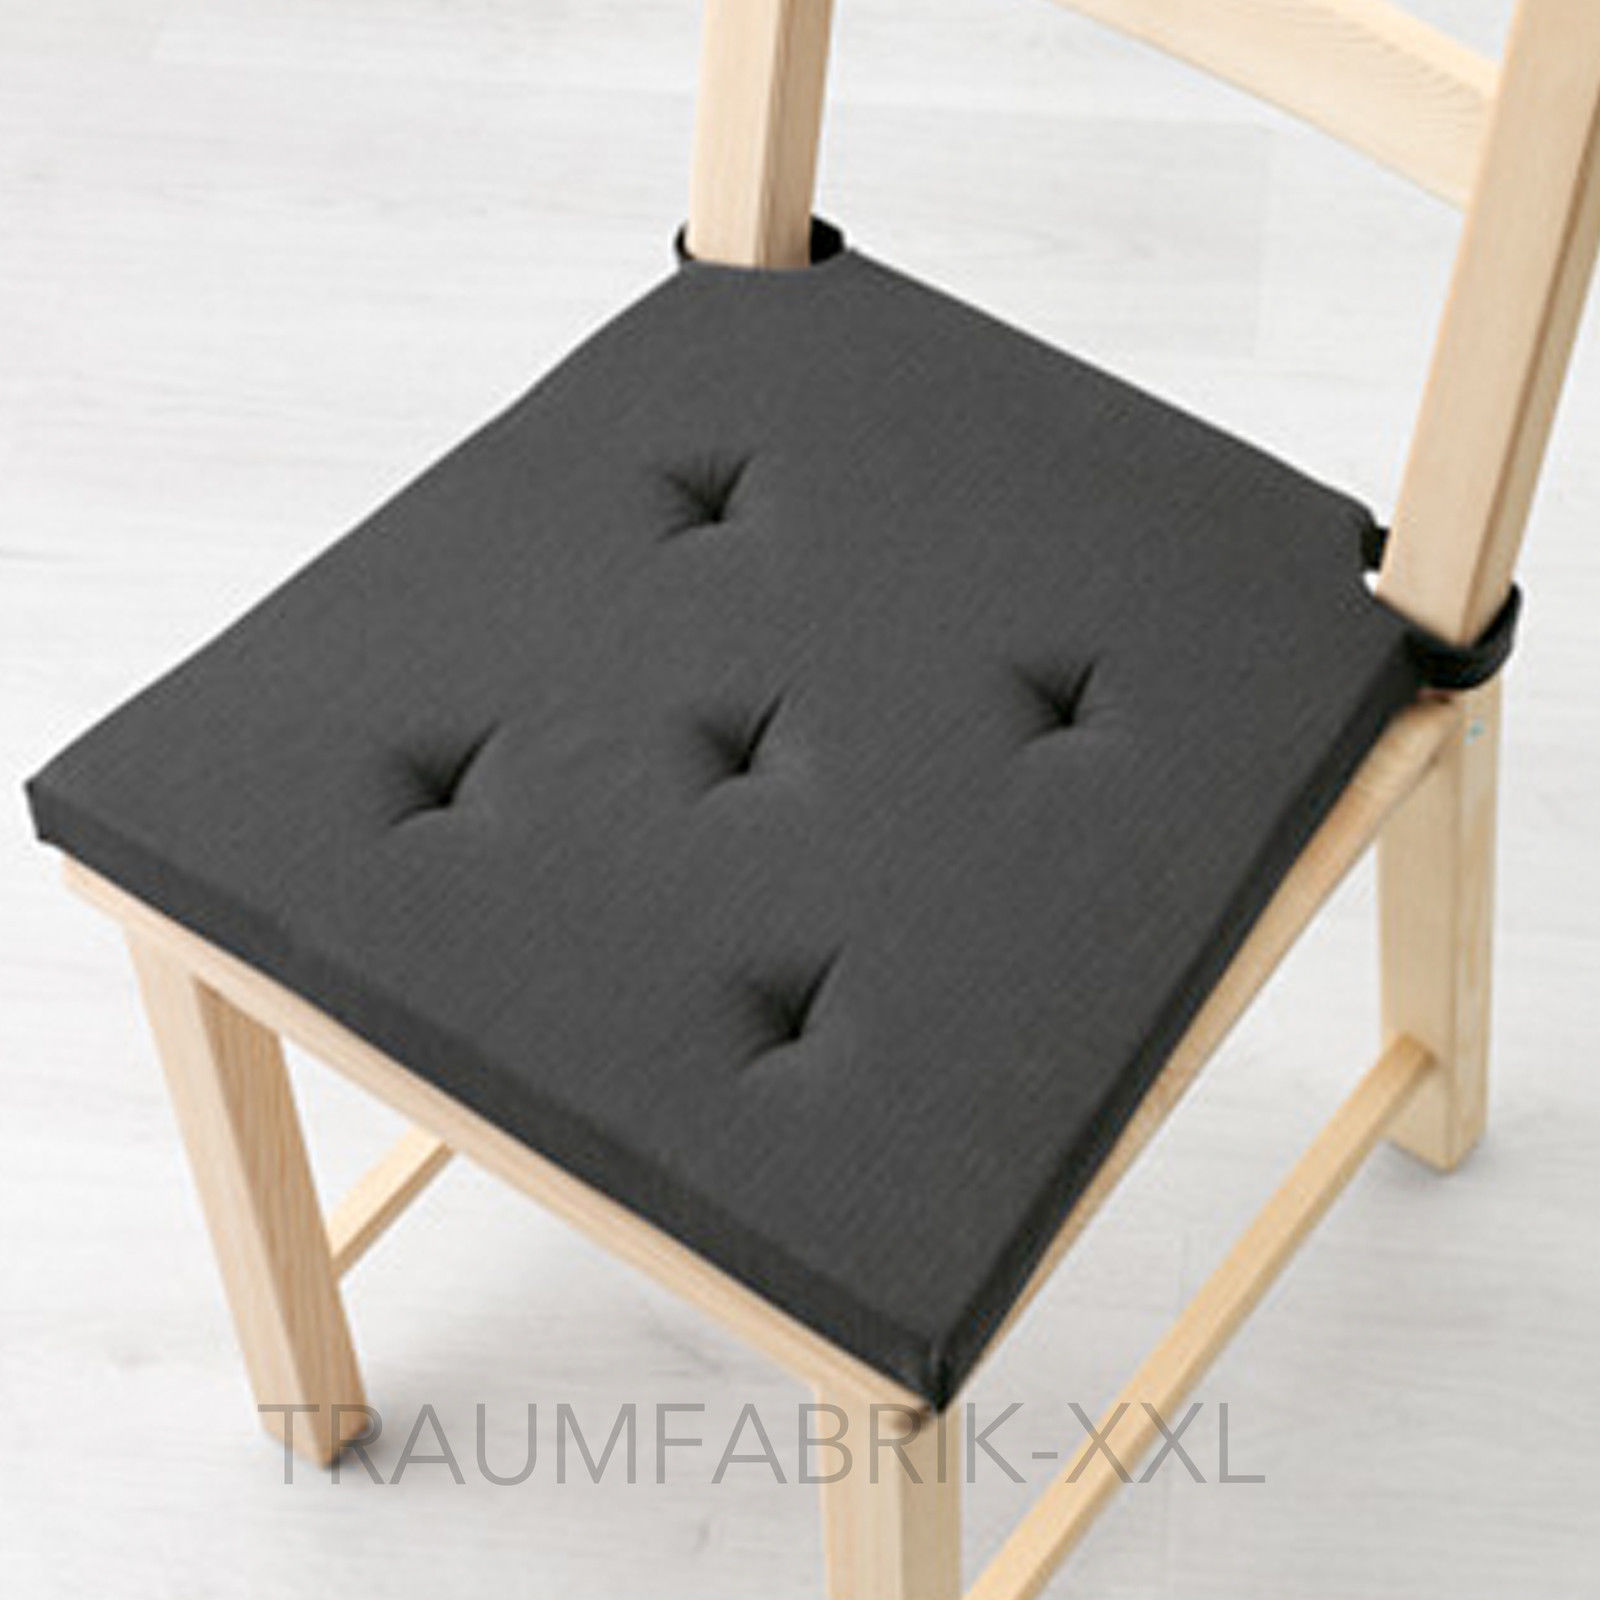 ikea sofakissen dekokissen stuhlkissen sitzkissen polsterkissen grau schwarz neu traumfabrik xxl. Black Bedroom Furniture Sets. Home Design Ideas